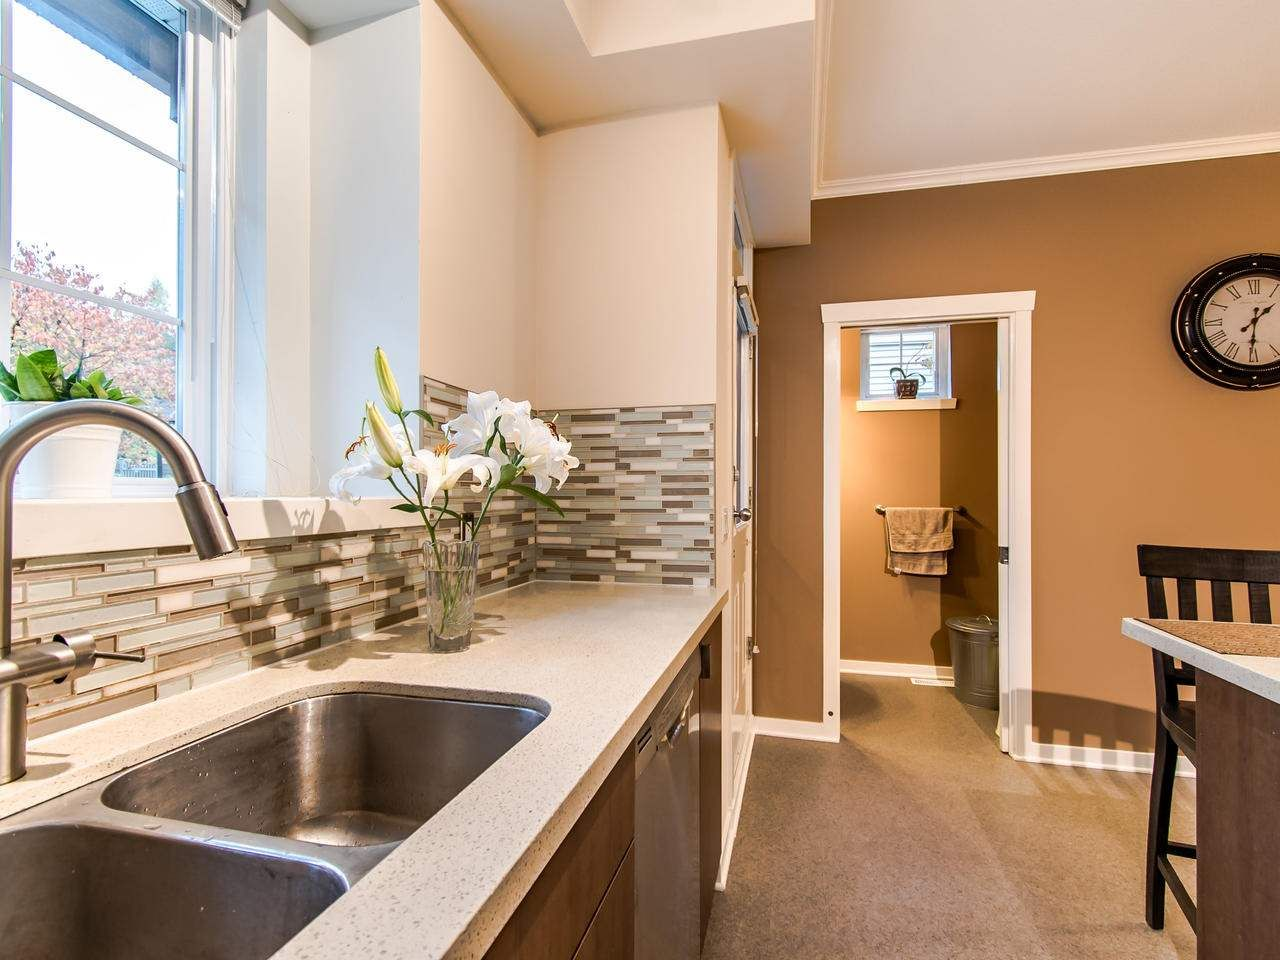 """Photo 7: Photos: 7 2200 PANORAMA Drive in Port Moody: Heritage Woods PM Townhouse for sale in """"THE QUEST"""" : MLS®# R2414883"""